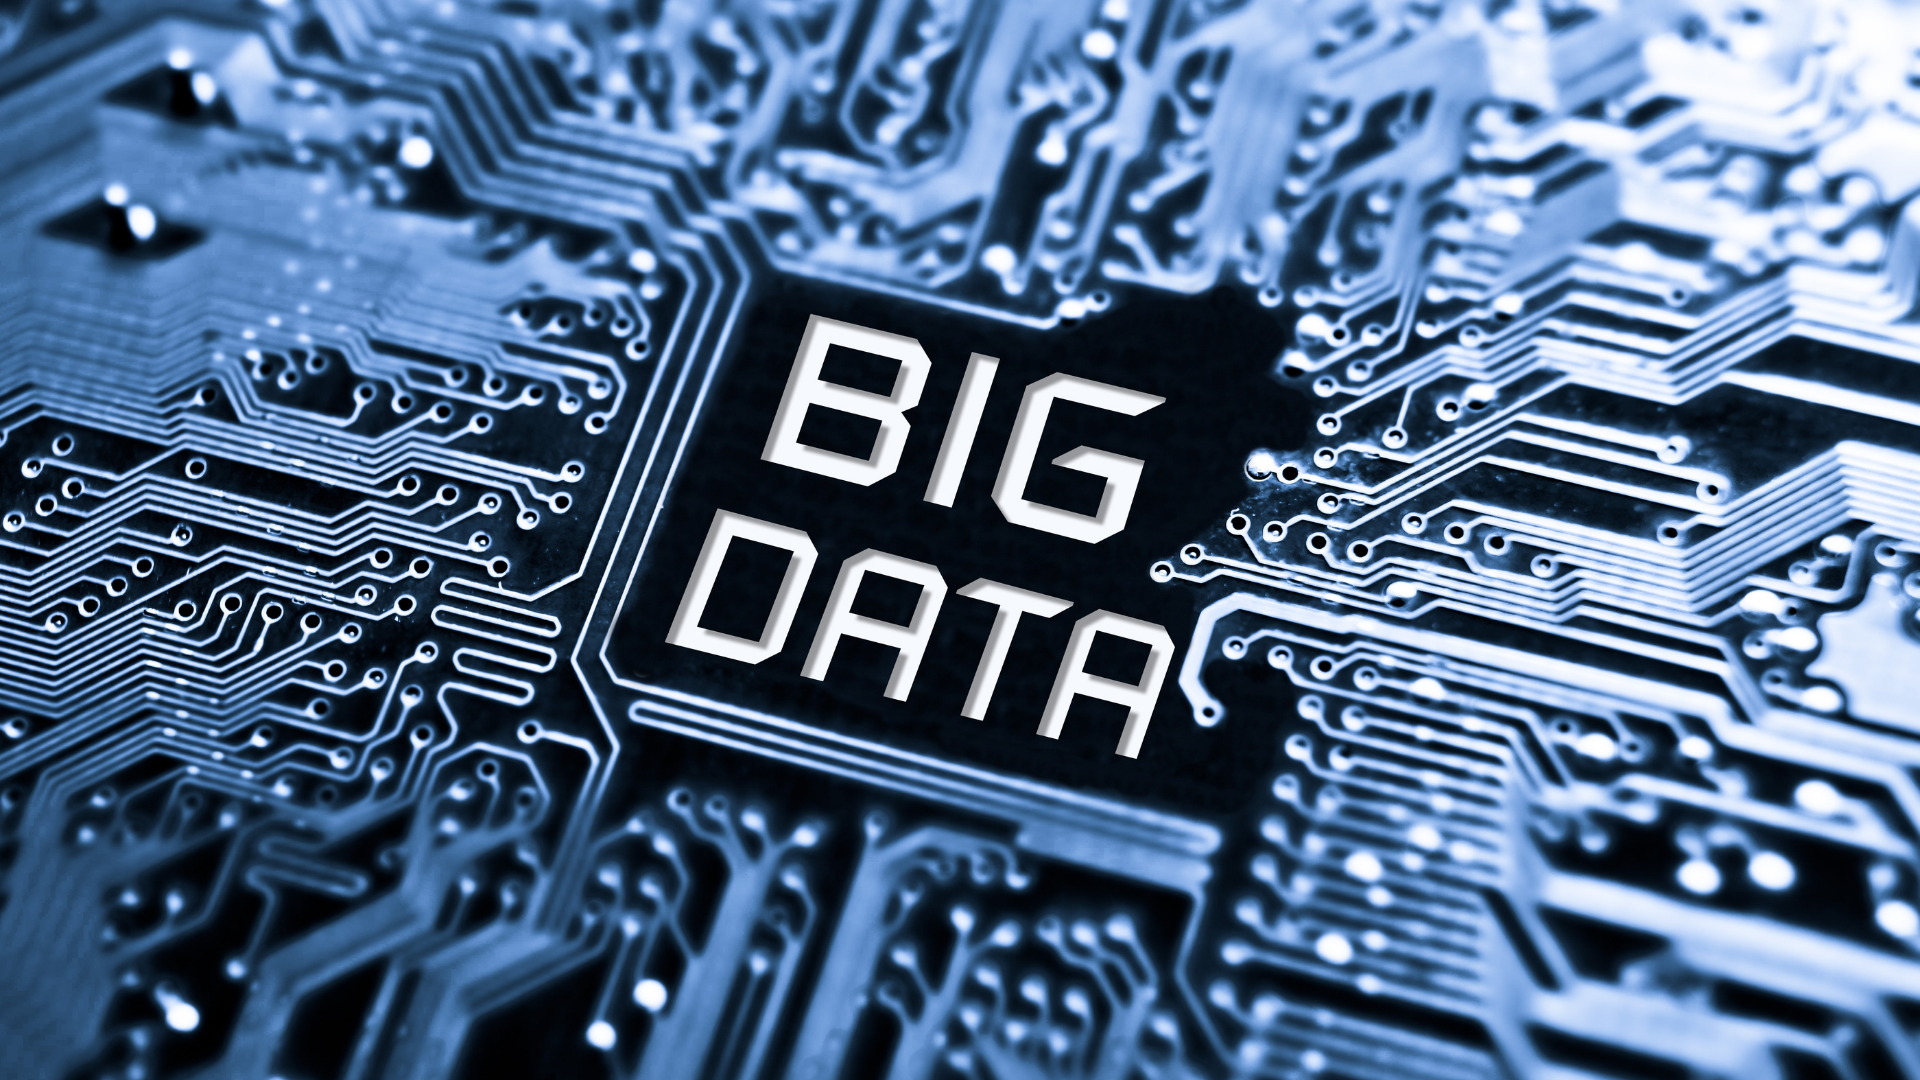 Just How Big is Big Data for Field Service Operations